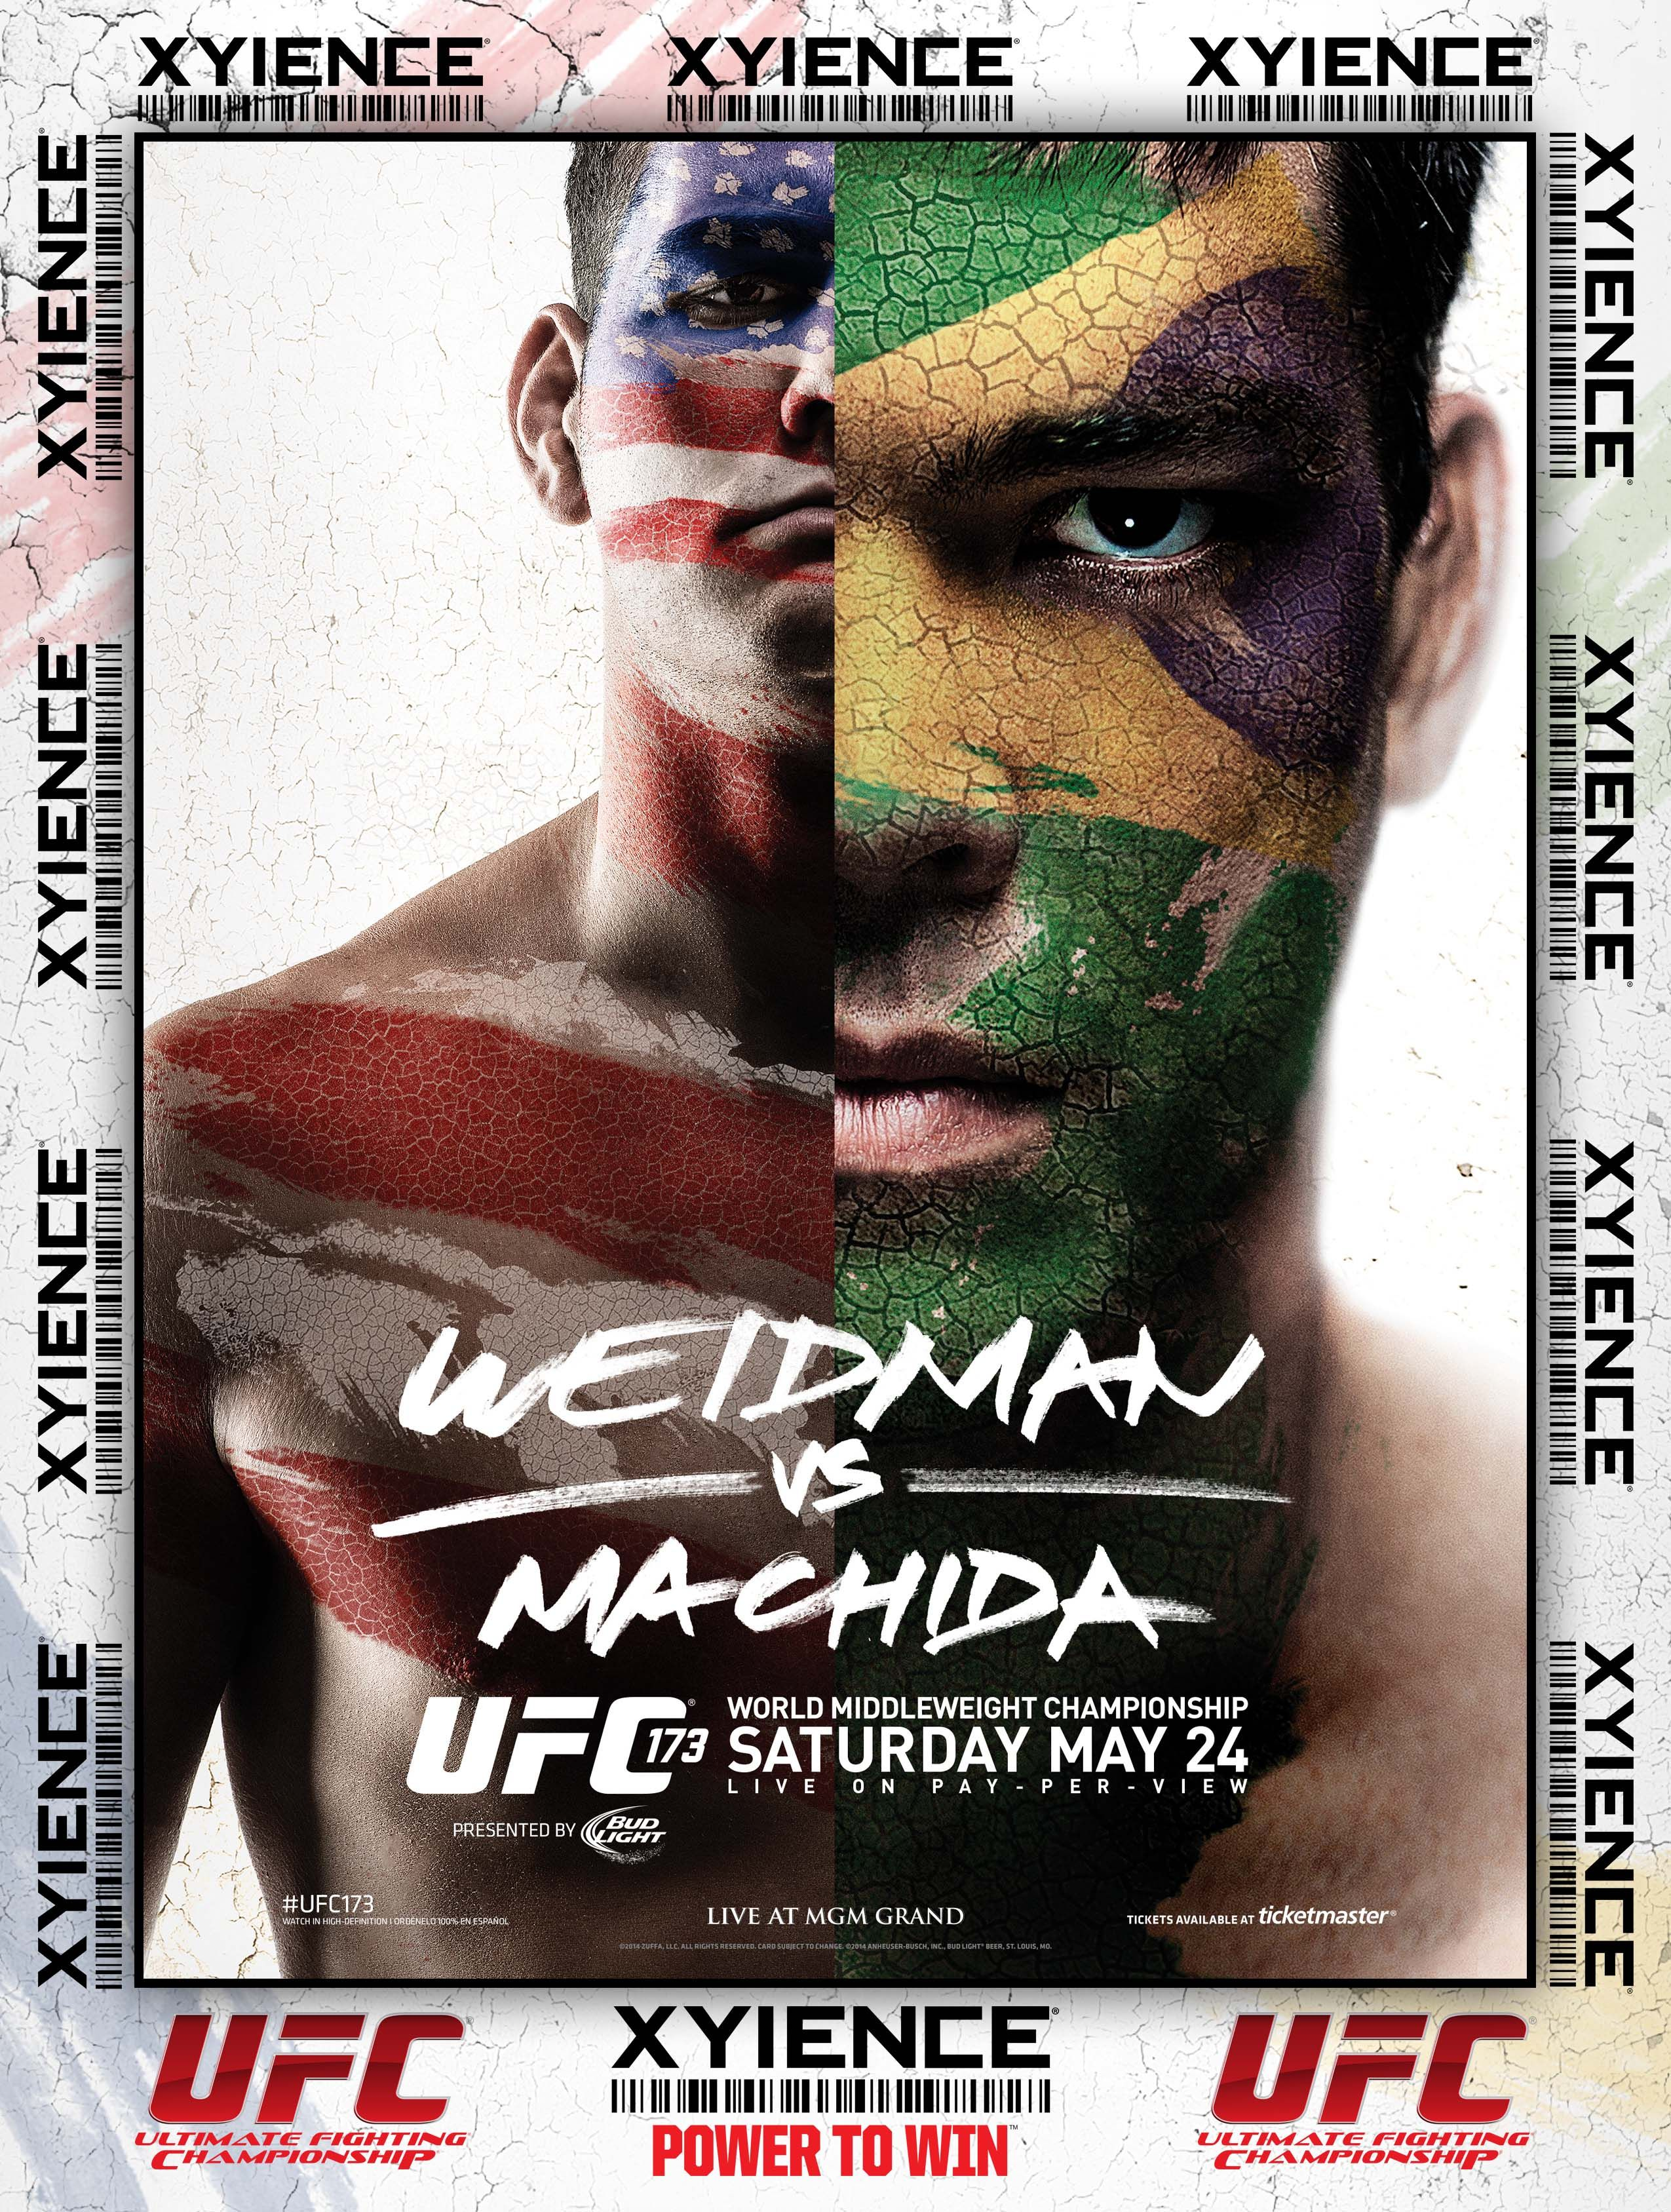 Ufc 173 Weidman Vs Machida Saturday May 24th Live On Pay Per View From The Mgm Grand Garden Arena In Las Vegas Nevada With Images Machida Ufc Weidman